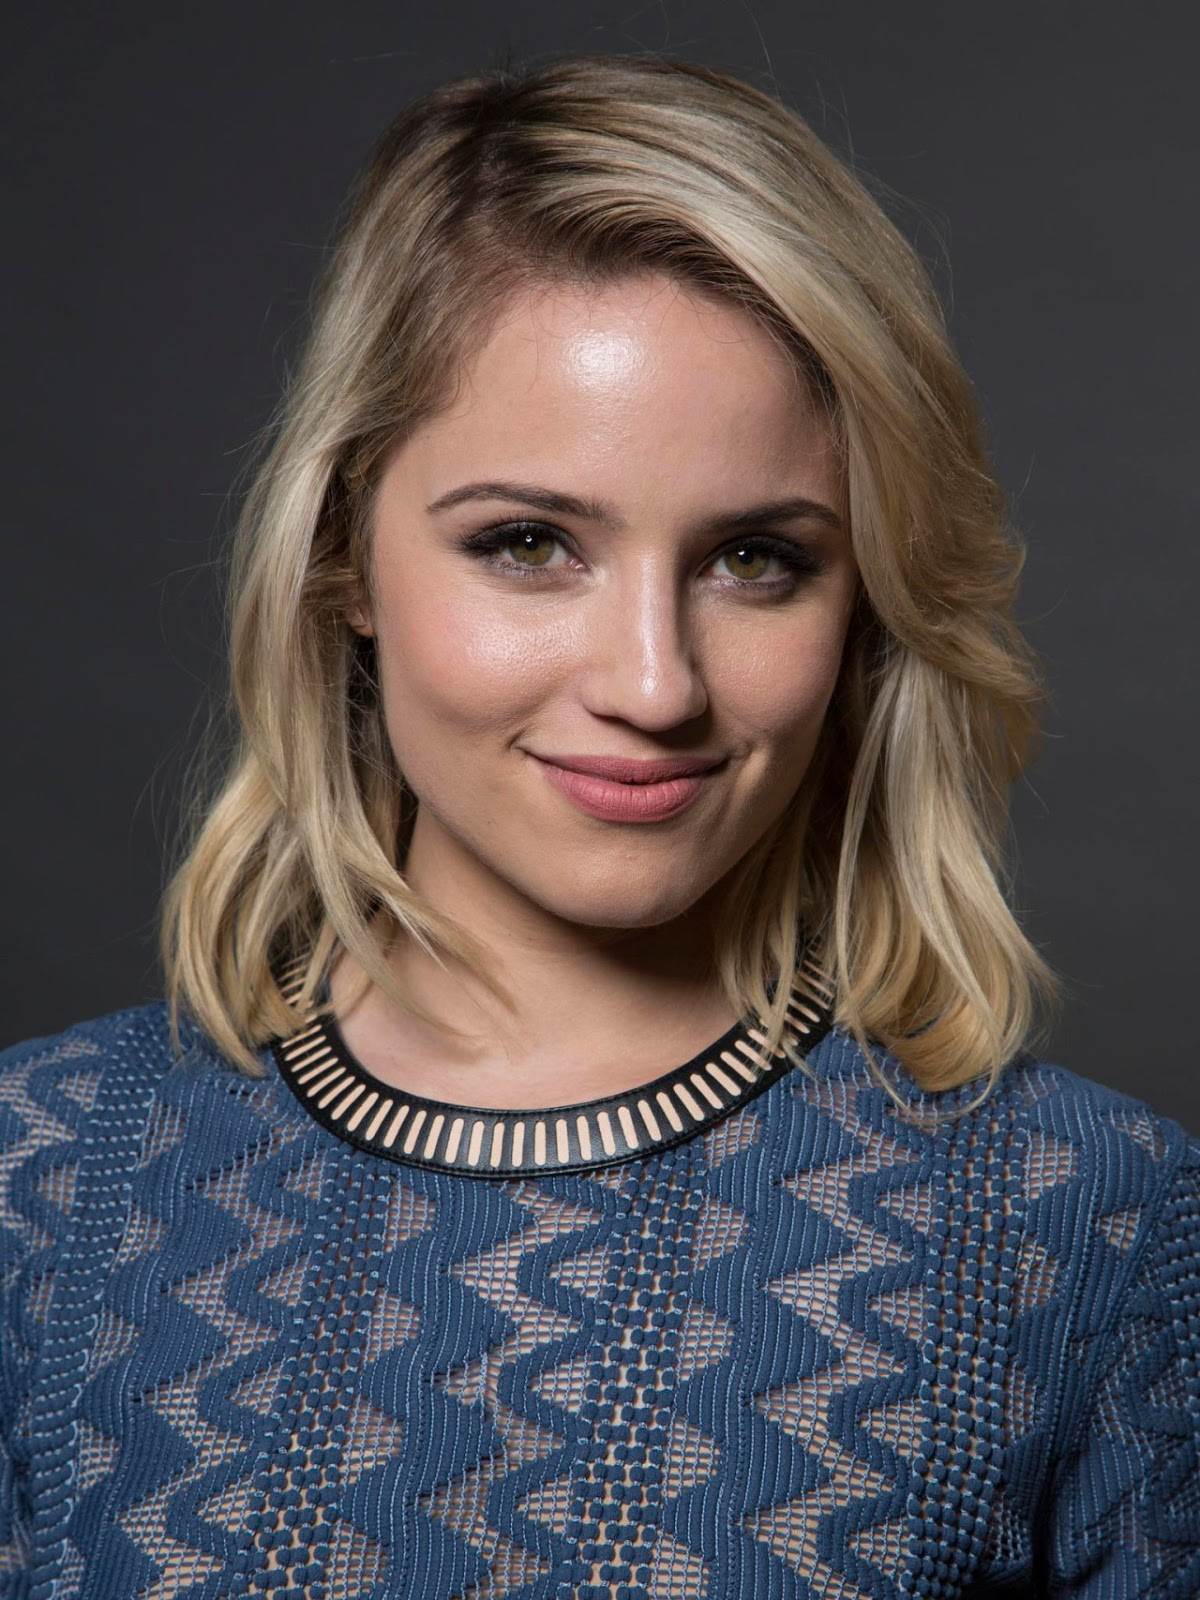 Hacked Dianna Agron nudes (98 pics), Selfie